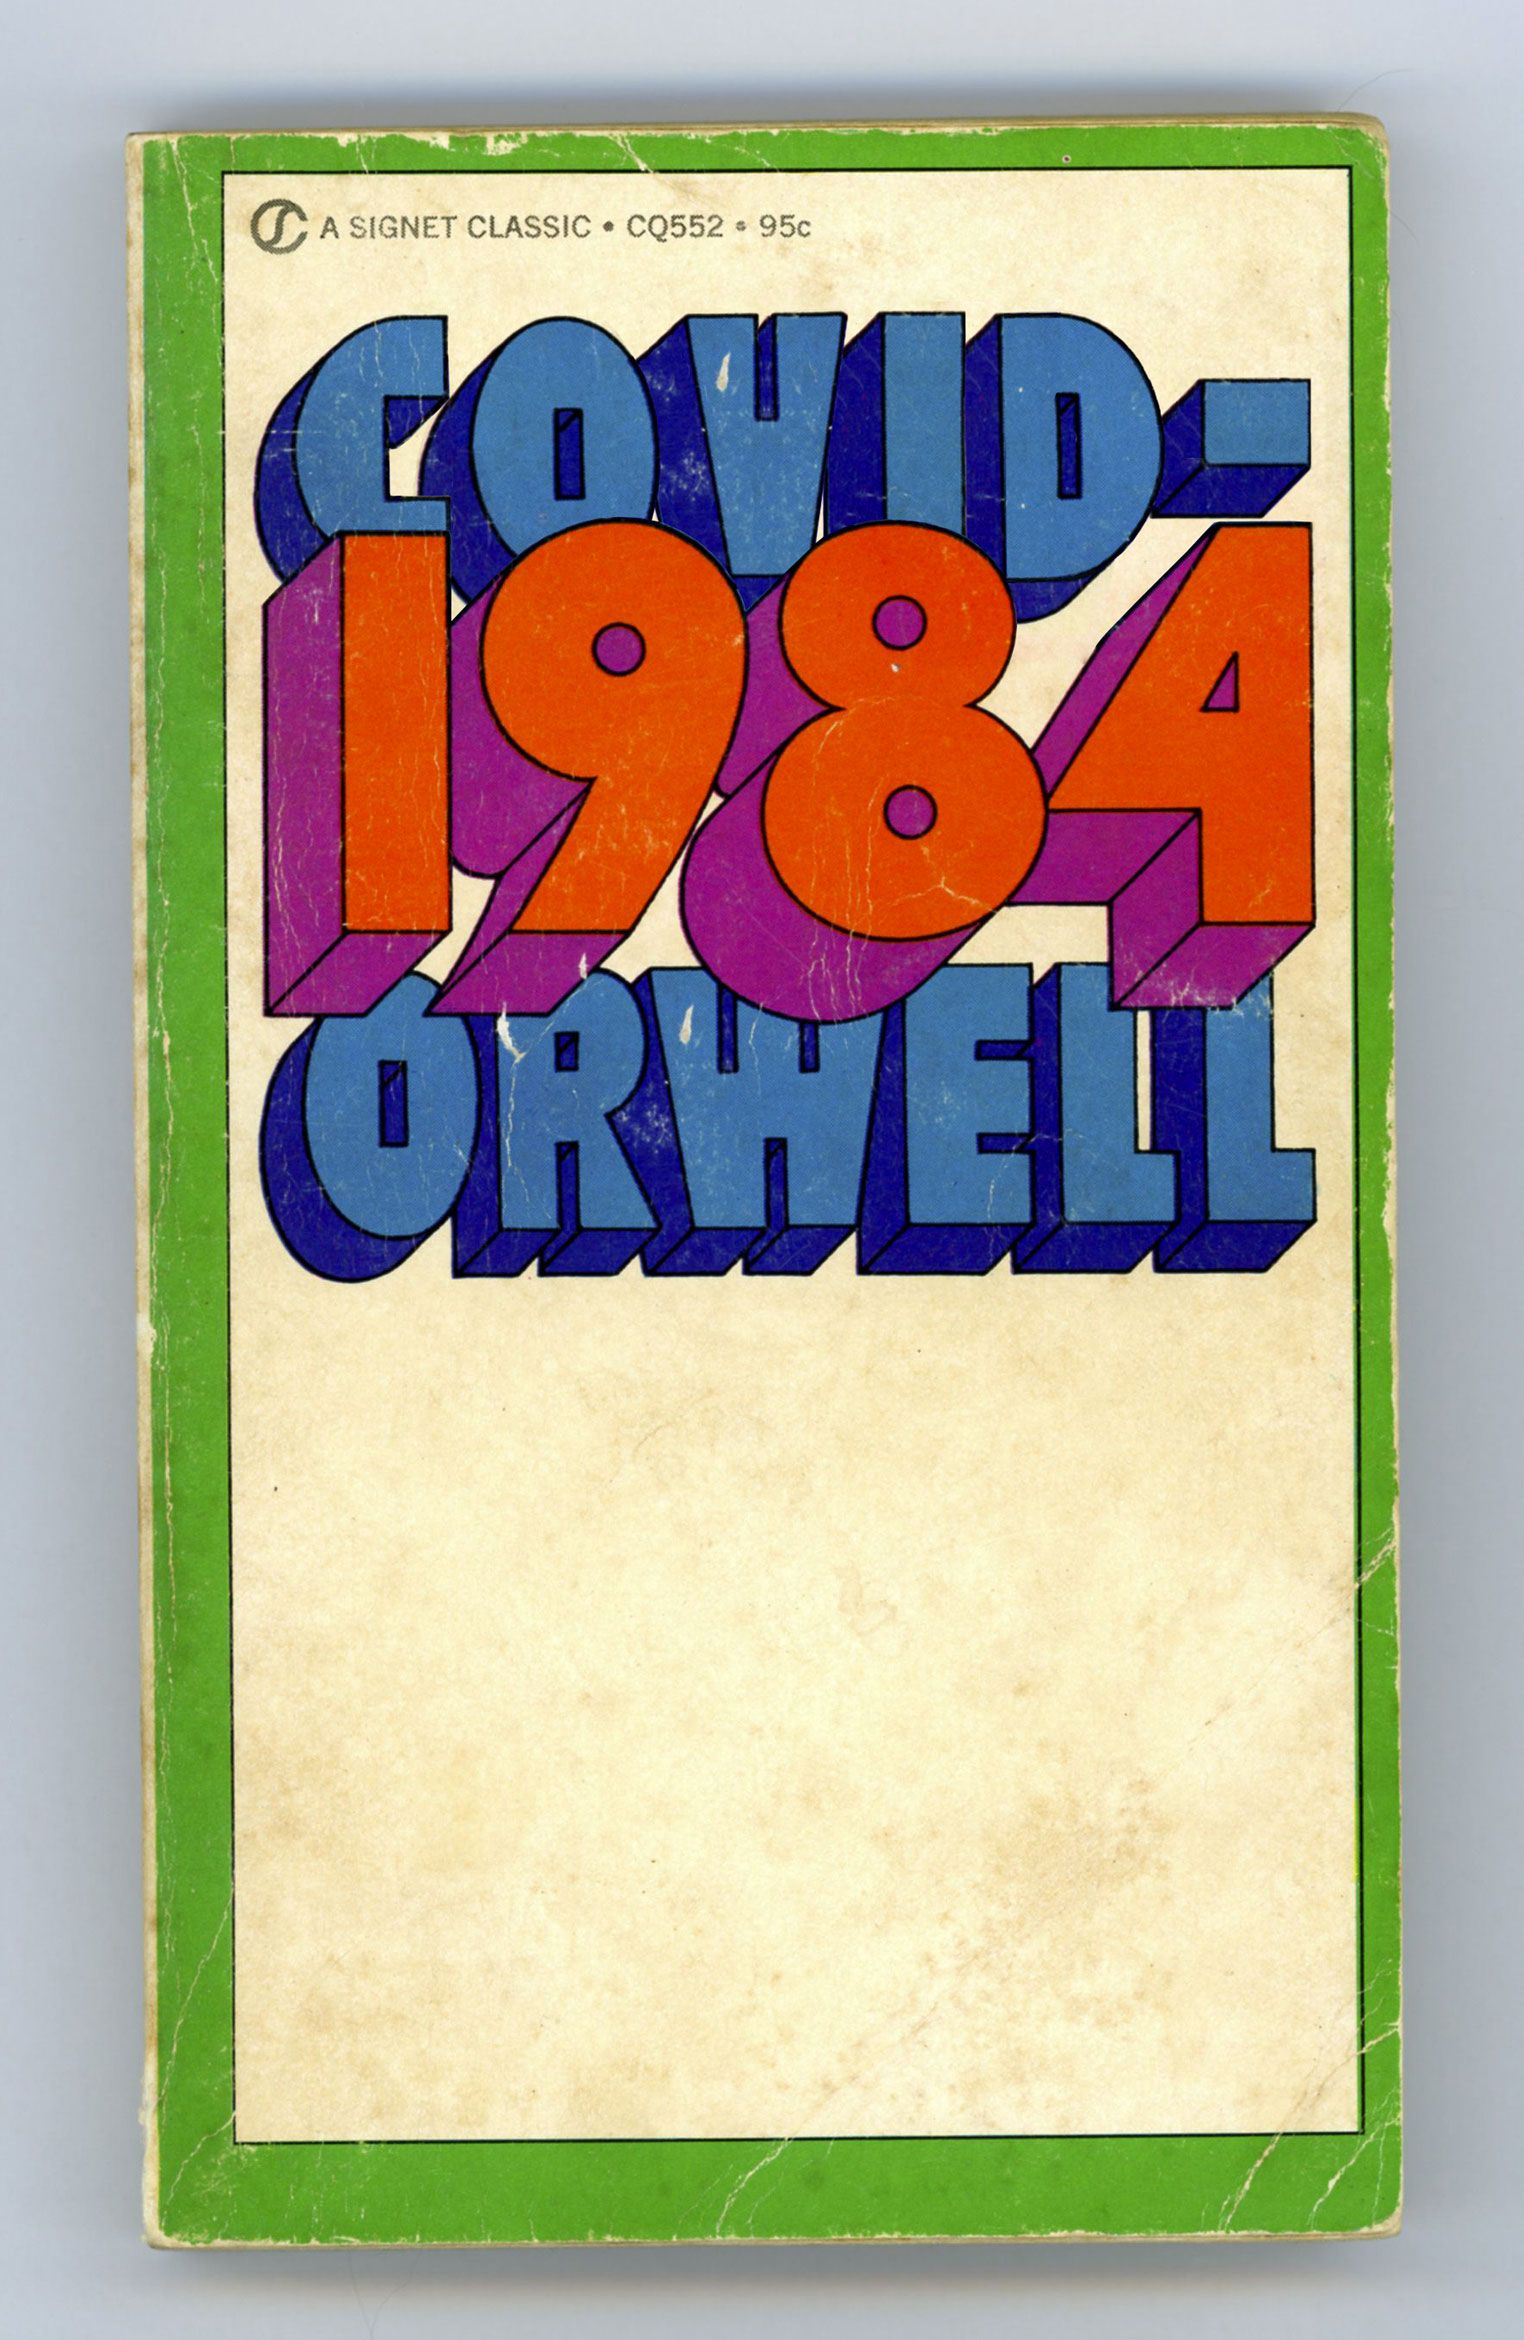 COVID-1984 (Nineteen Eighty-Four, by George Orwell)